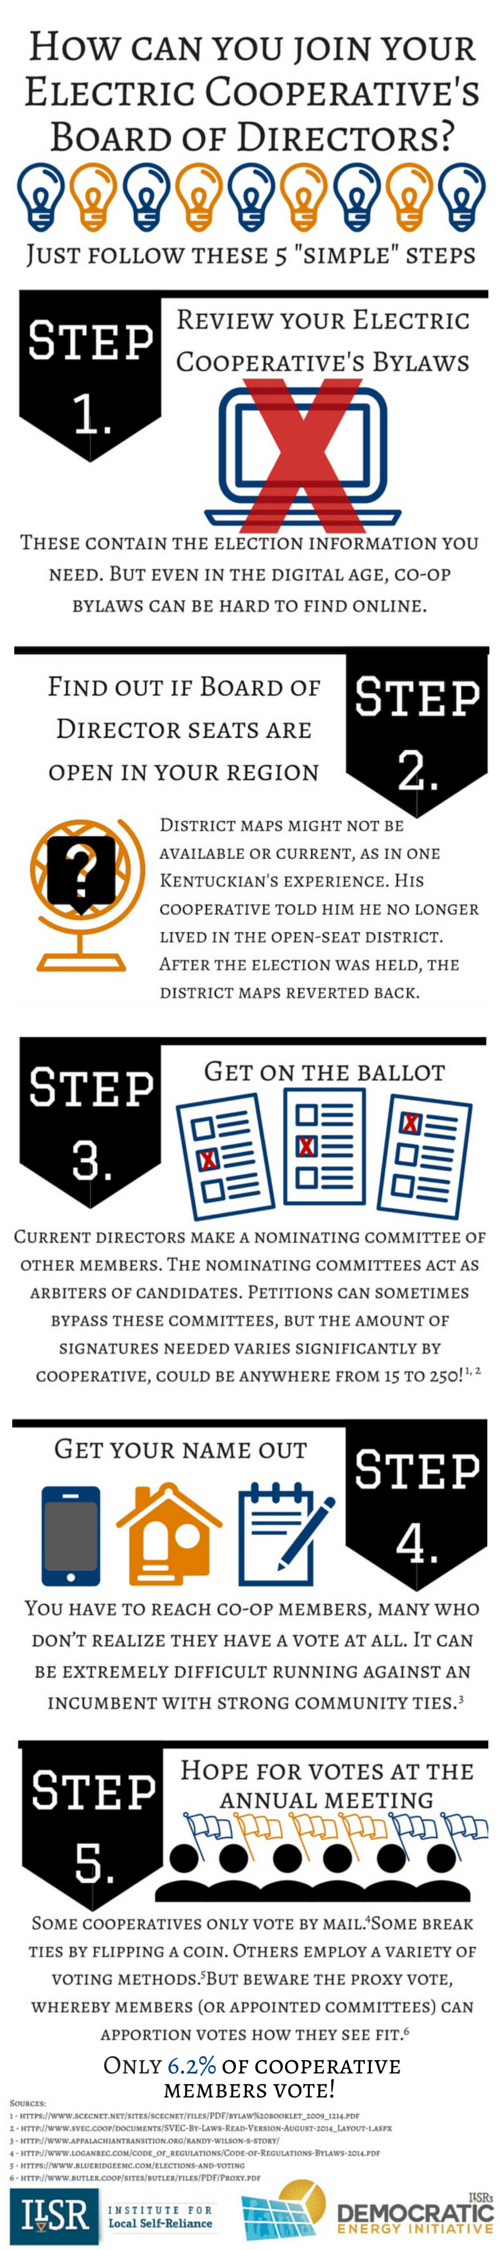 Rural Electric Cooperative Voting Graphic